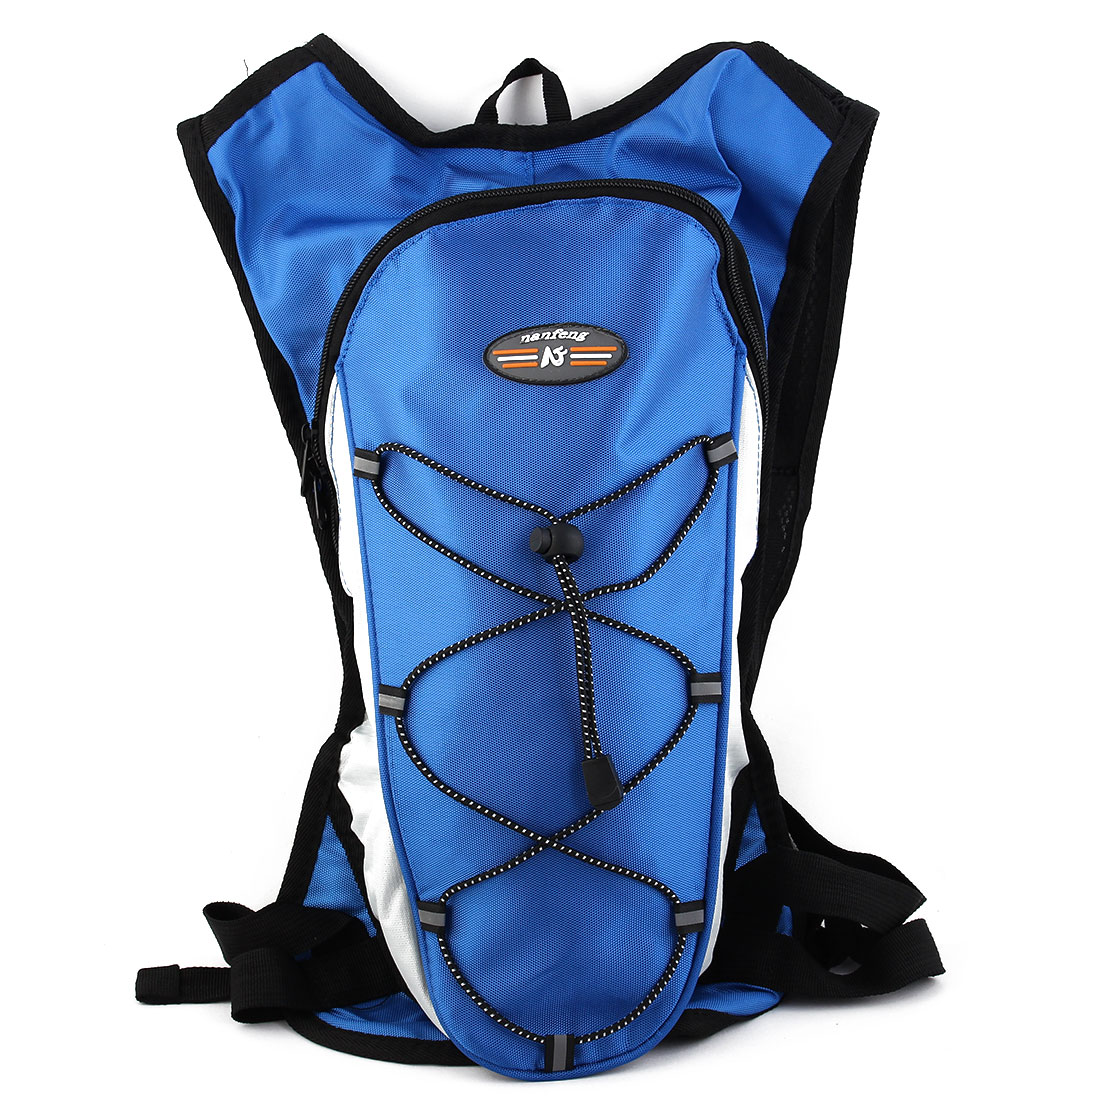 Outdoor Hiking Camping Cycling Water Bladder Bag Hydration Backpack Pack Blue by Unique-Bargains